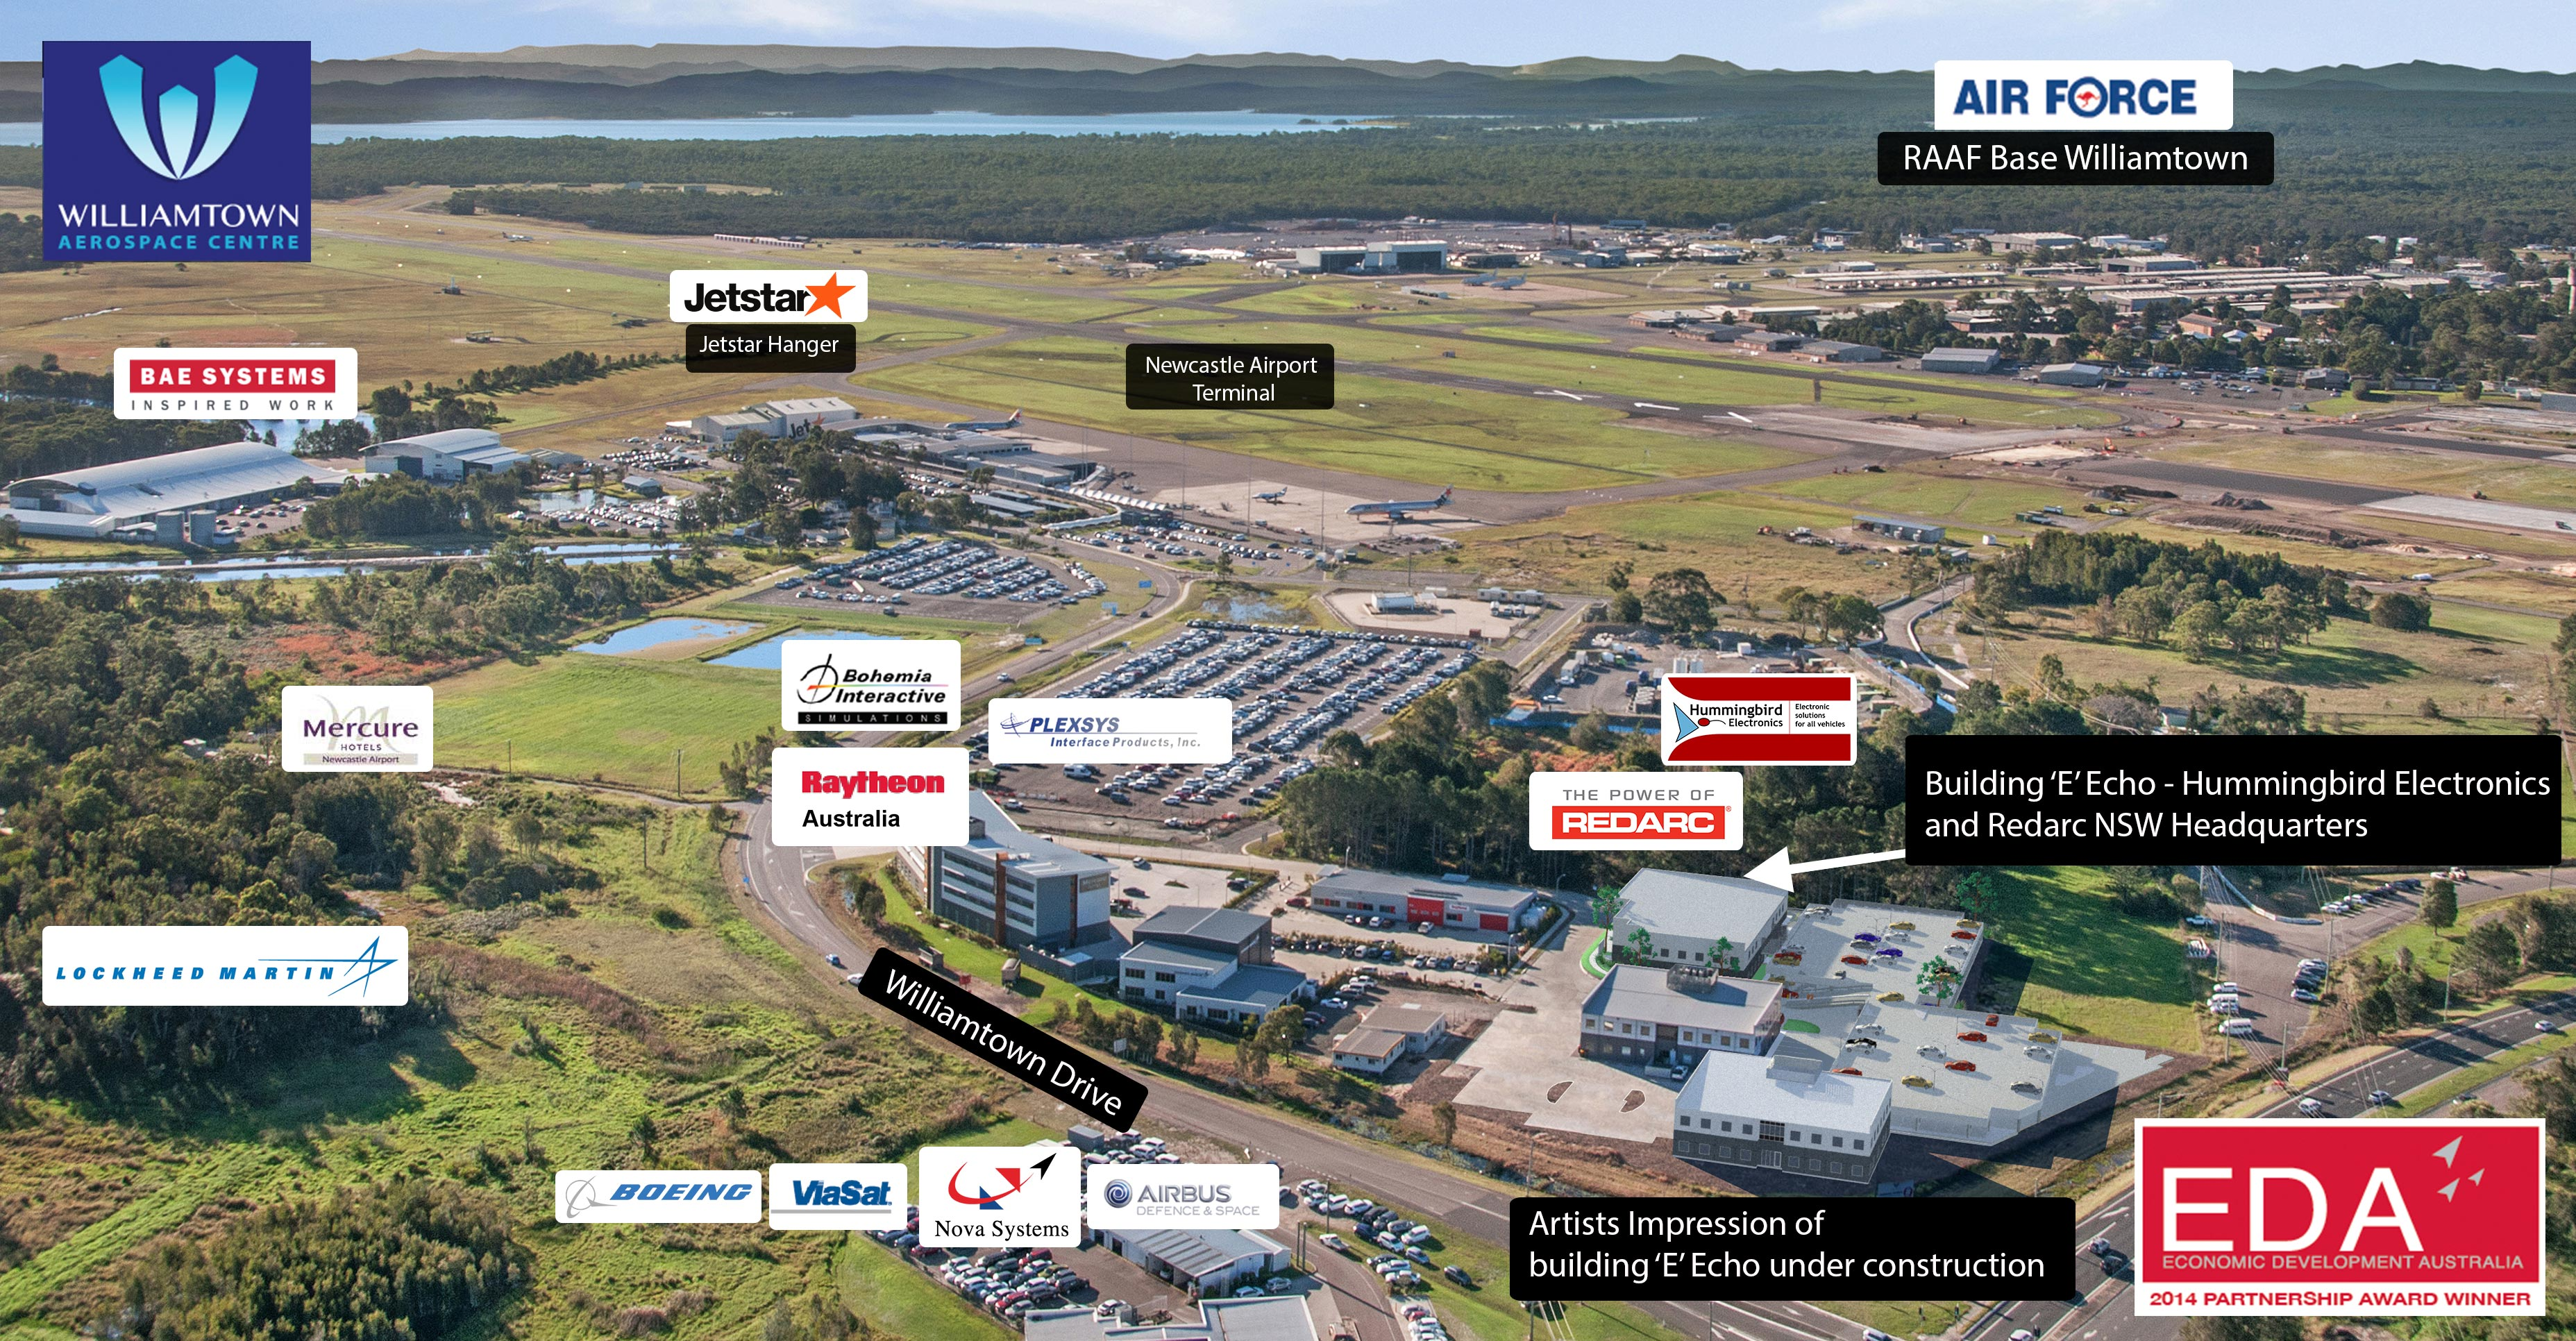 The REDARC Group's Hummingbird Electronics, will be located in Building E within the Williamtown Aerospace Centre and is due to be completed in June 2017, ...